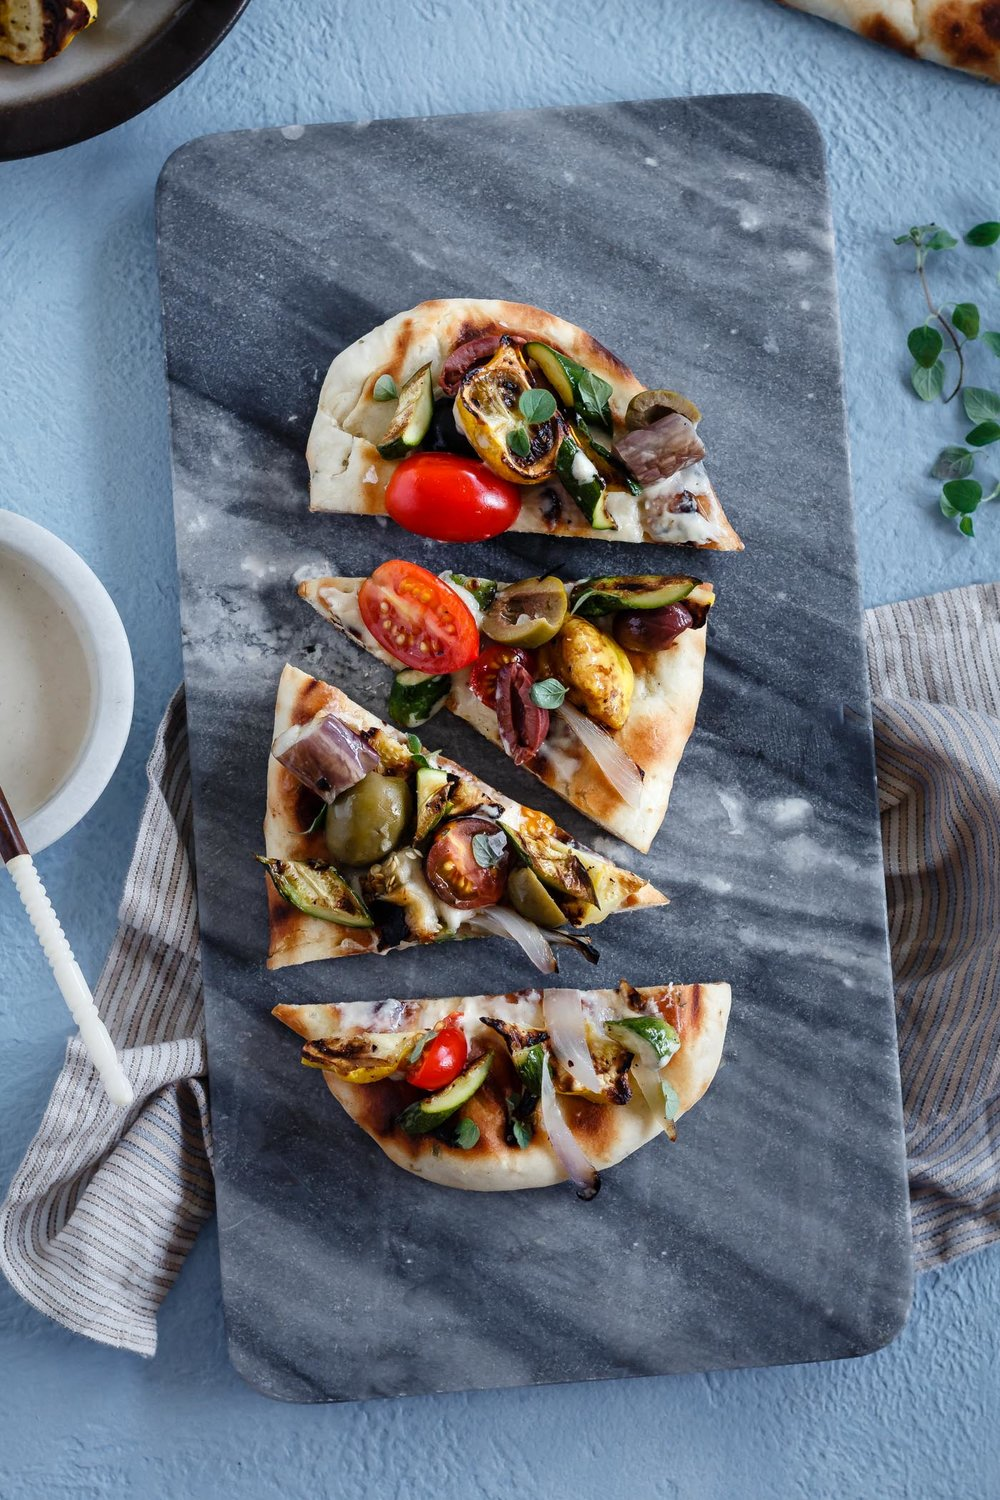 Grilled Mediterranean Vegetable Flatbread from Le Petit Eats